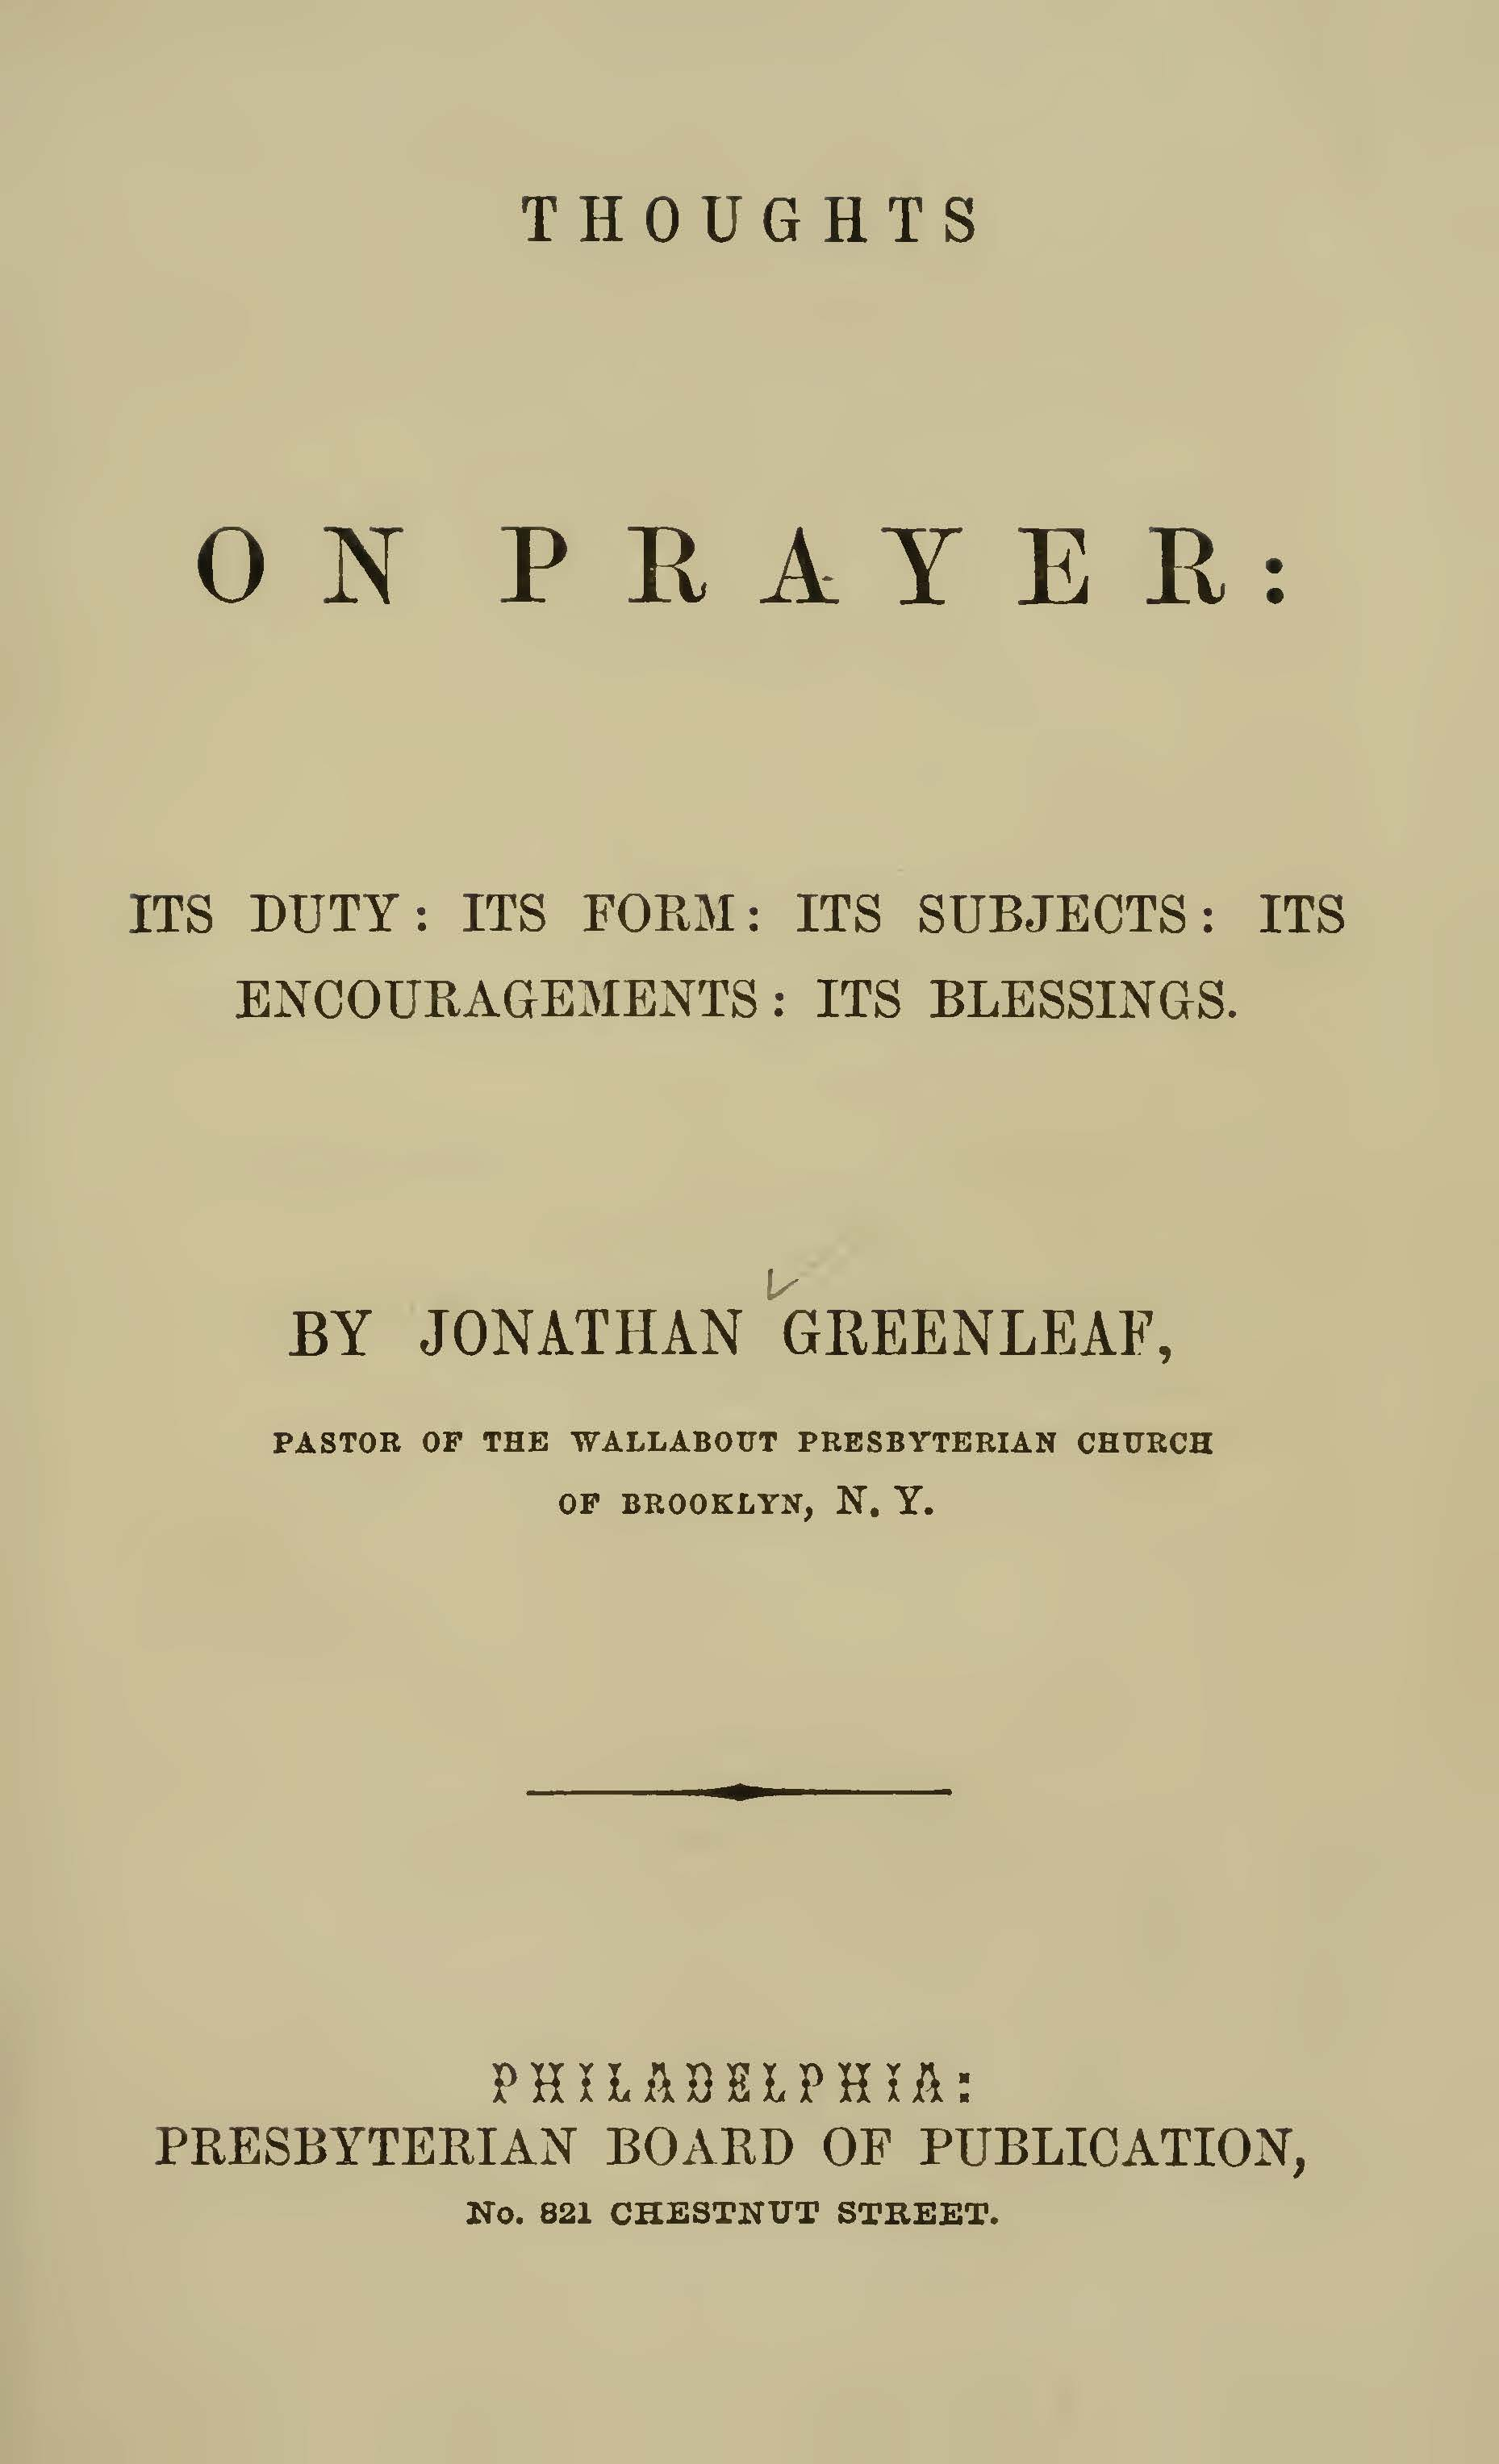 Greenleaf, Jonathan, Thoughts on Prayer Title Page.jpg